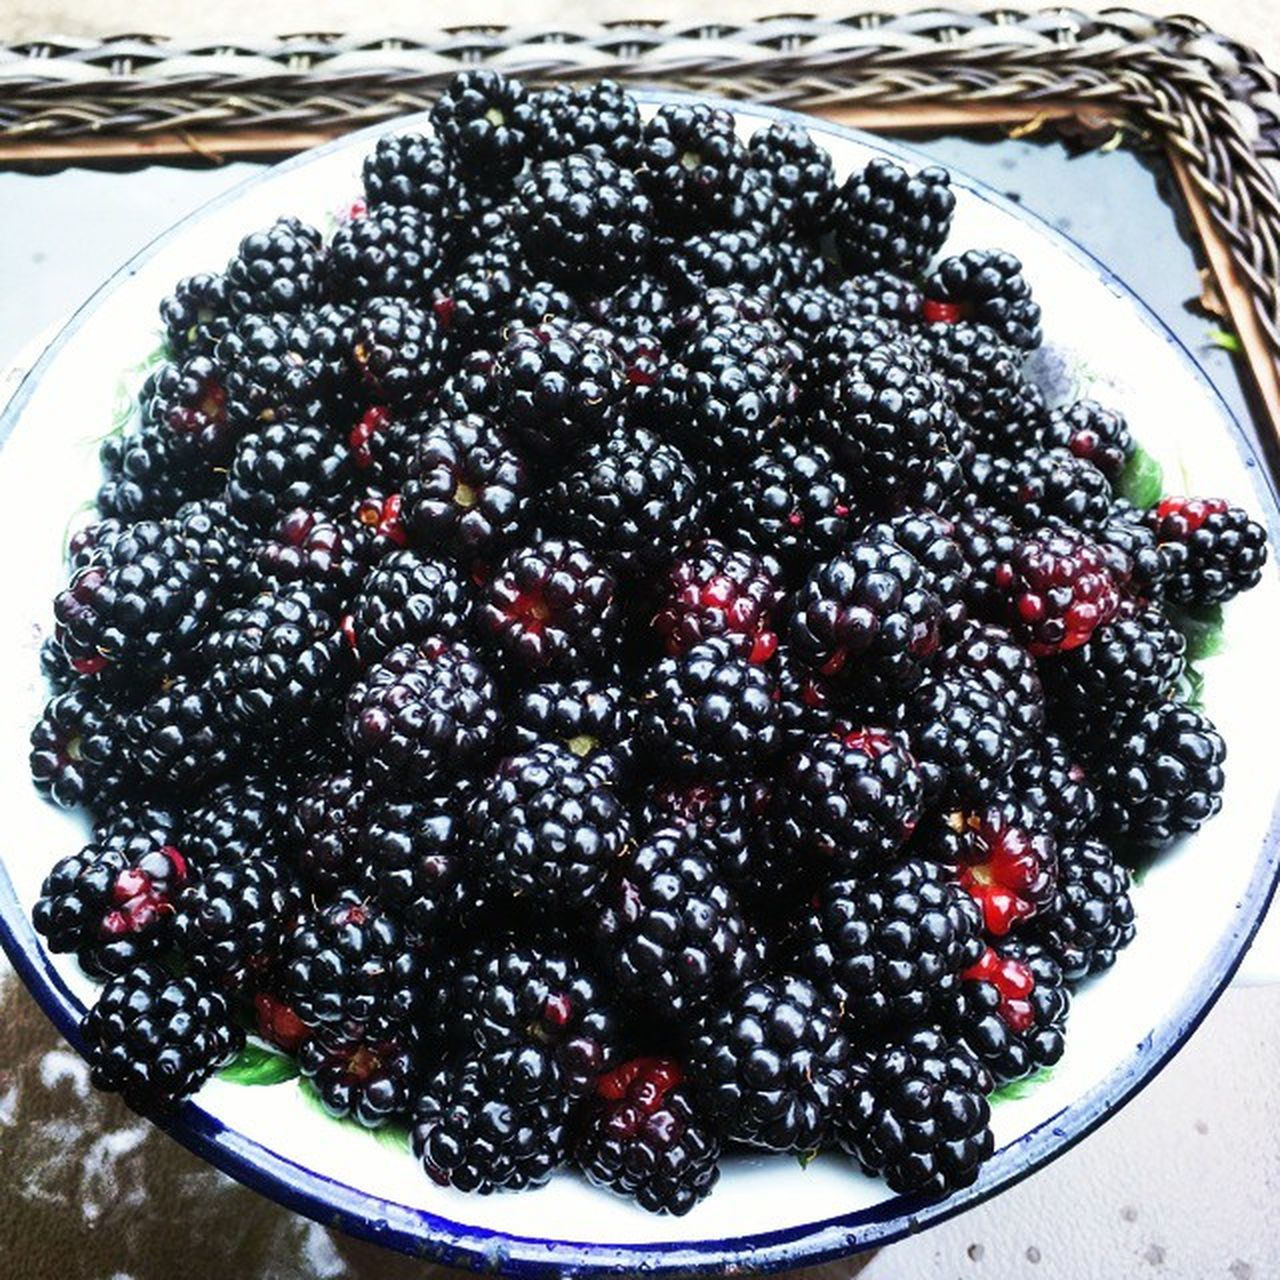 Morning pickings in MyBackGarden TexasDewberries Fb